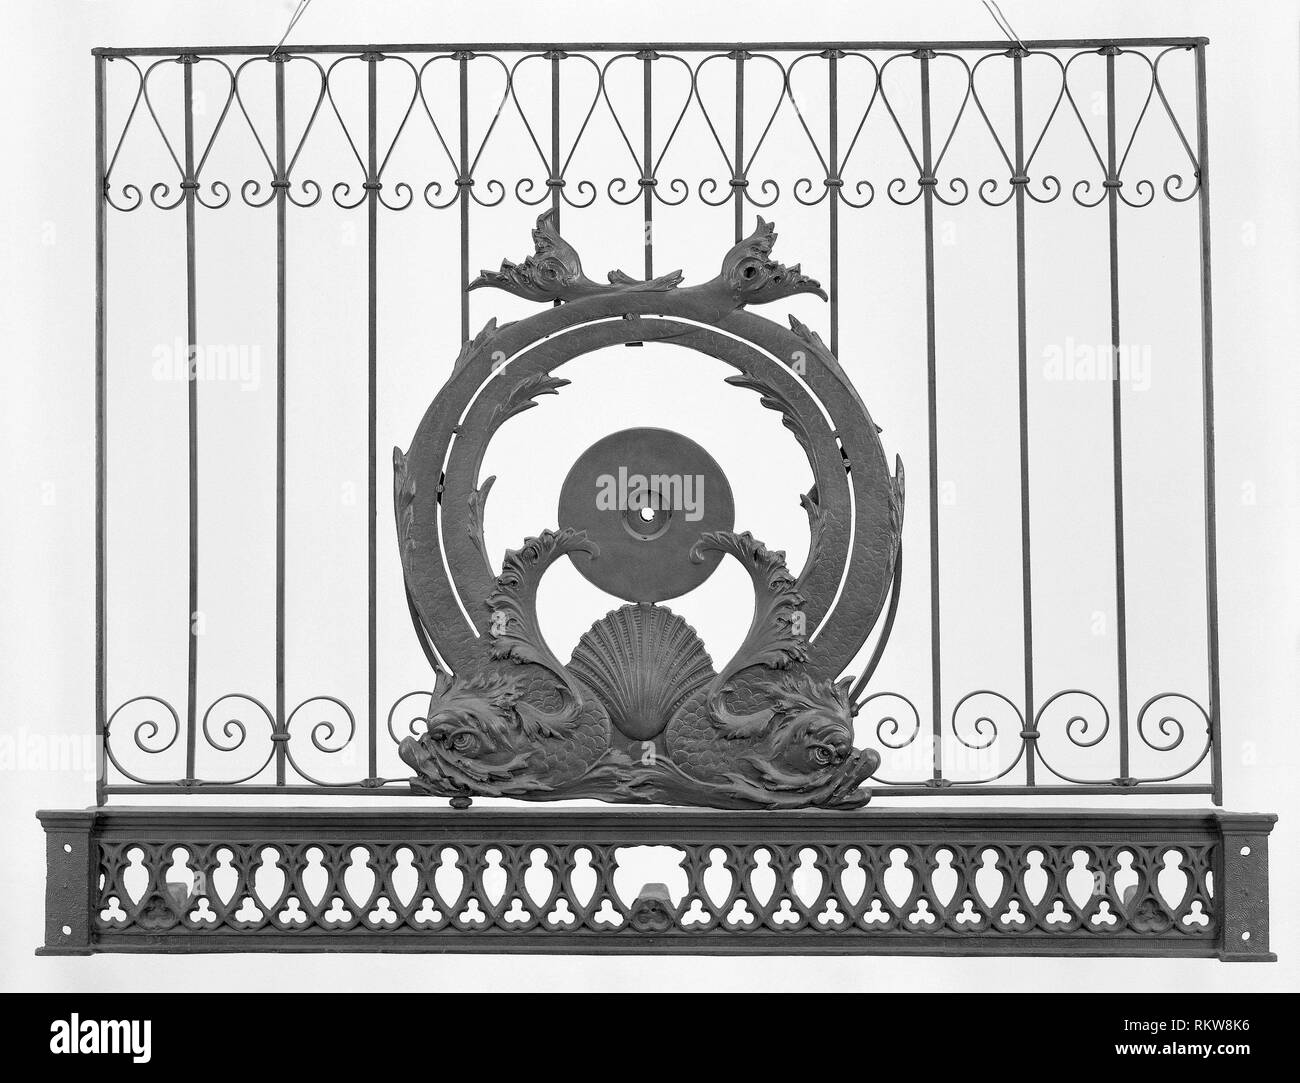 Fisher Building, 343 South Dearborn Street, Chicago, Illinois: Upper Portion of Elevator Grille - 1895/96 - Designer: Charles Atwood (American, - Stock Image